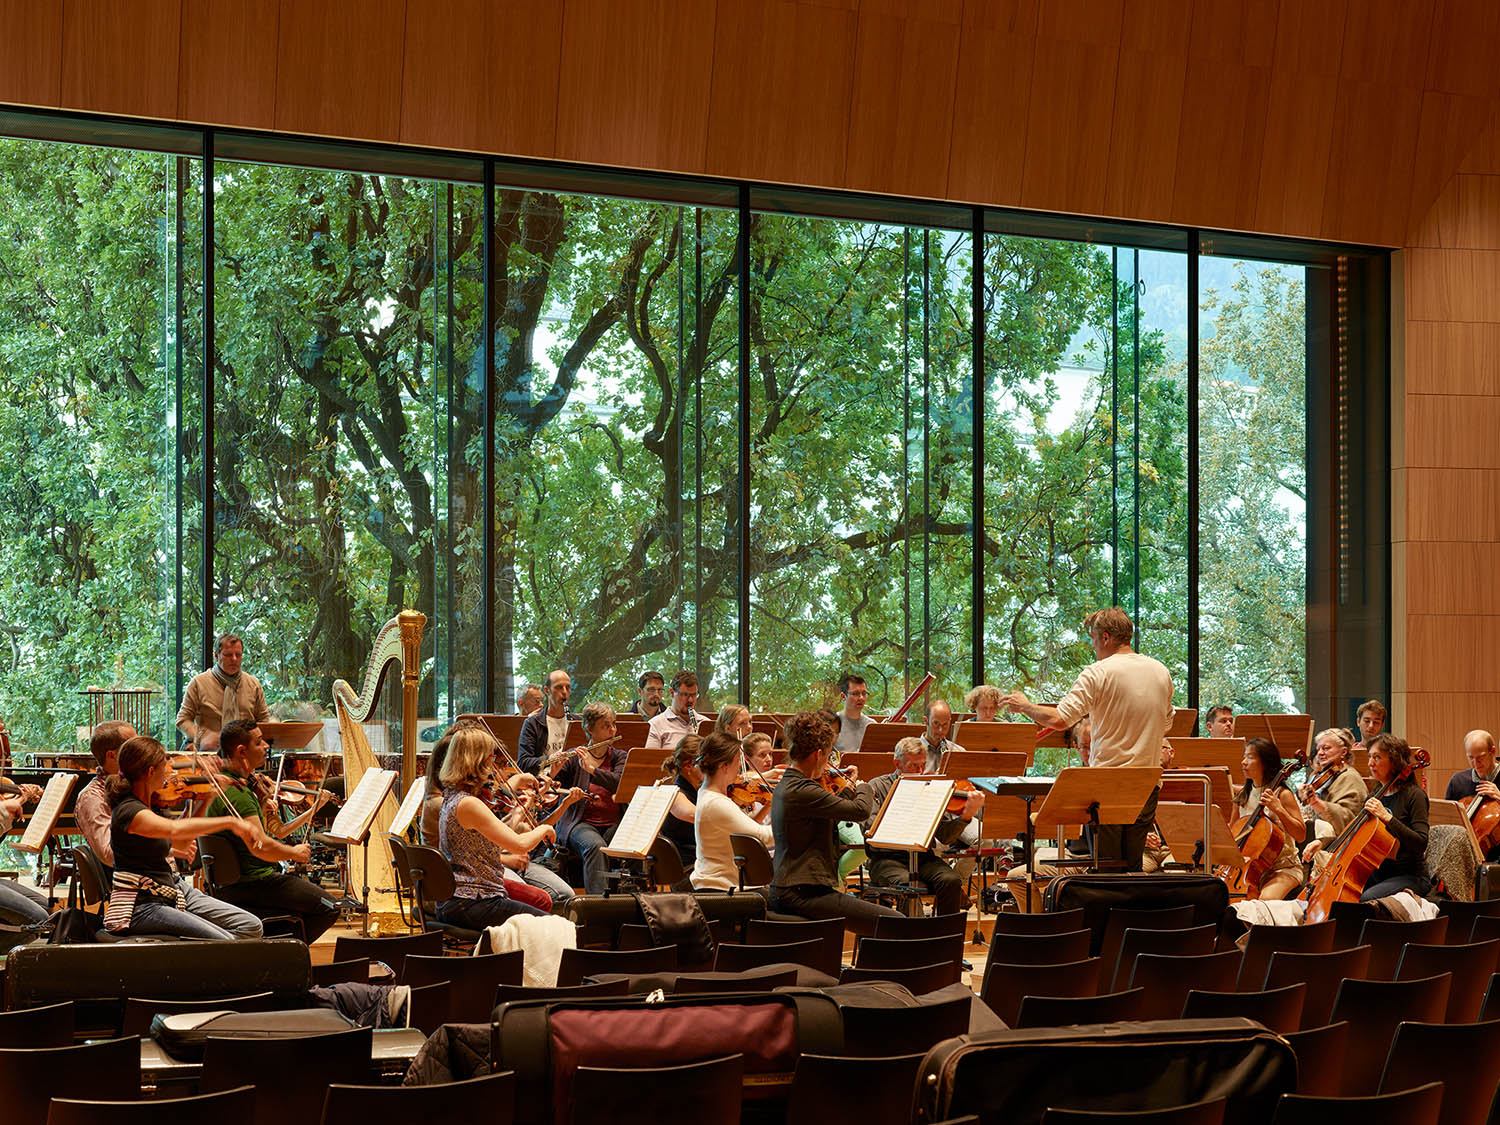 Haus der Musik, View from the Great Hall to the entry plaza  with protected age-old trees Roland Halbe